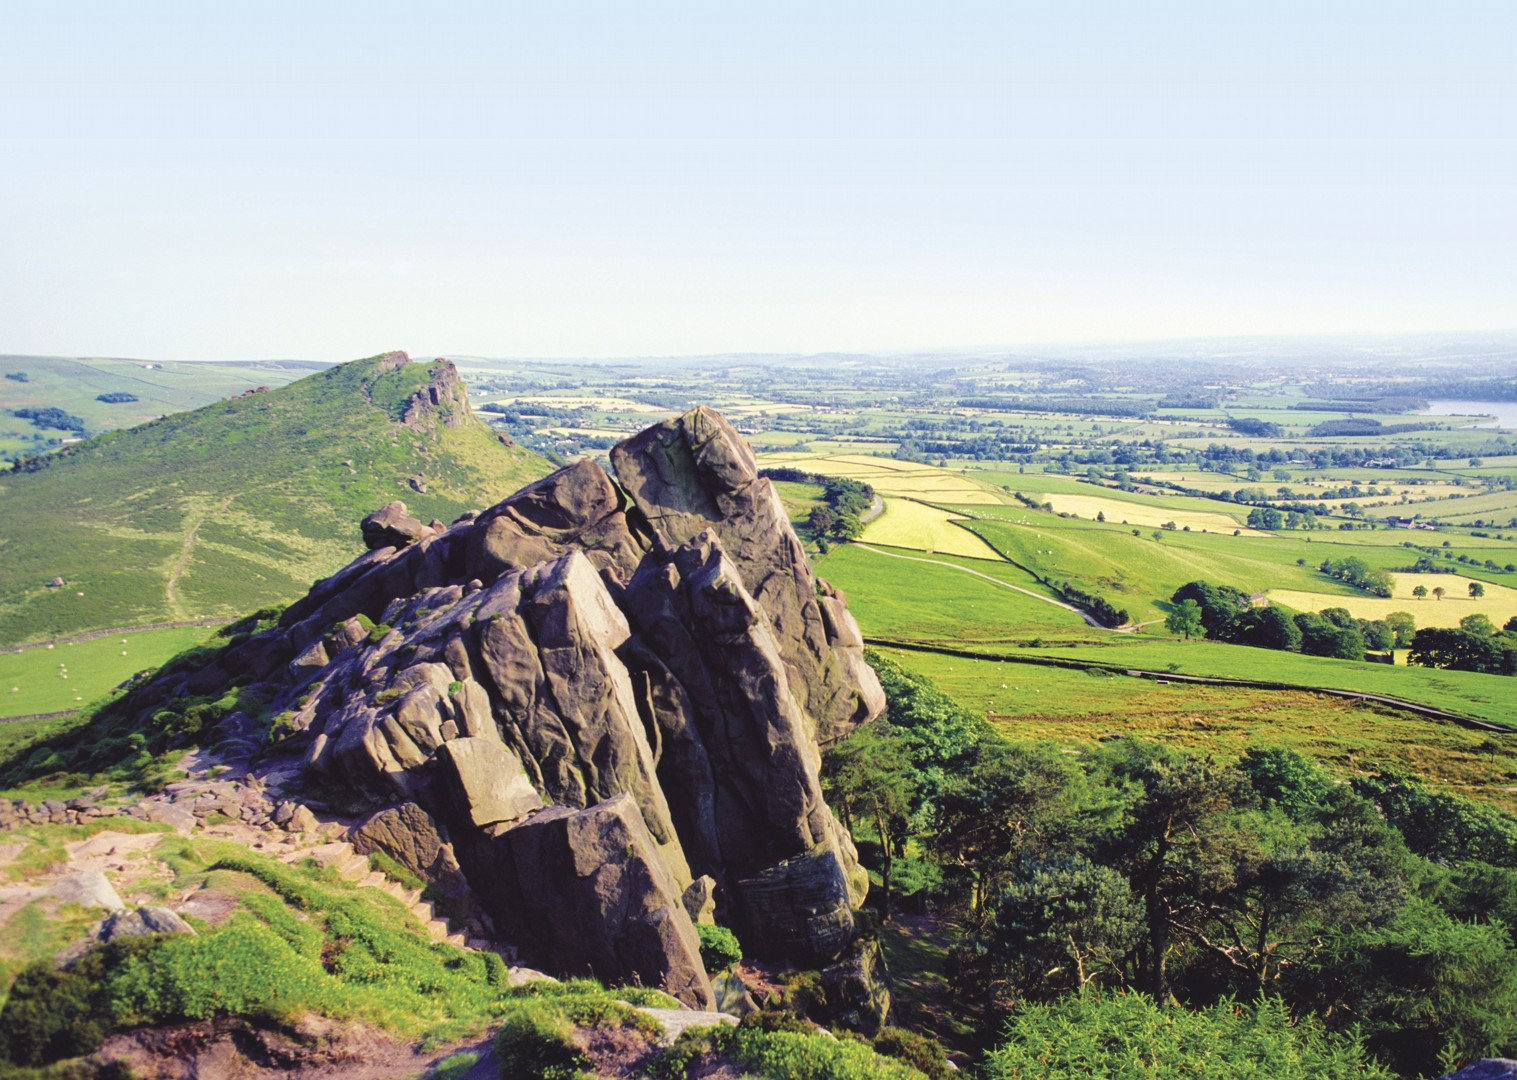 leisure-cycling-holiday-derbyshire-dovedale-nature-view.jpg - UK - Derbyshire Dales - Dovedale - Guided Leisure Cycling Holiday - Leisure Cycling